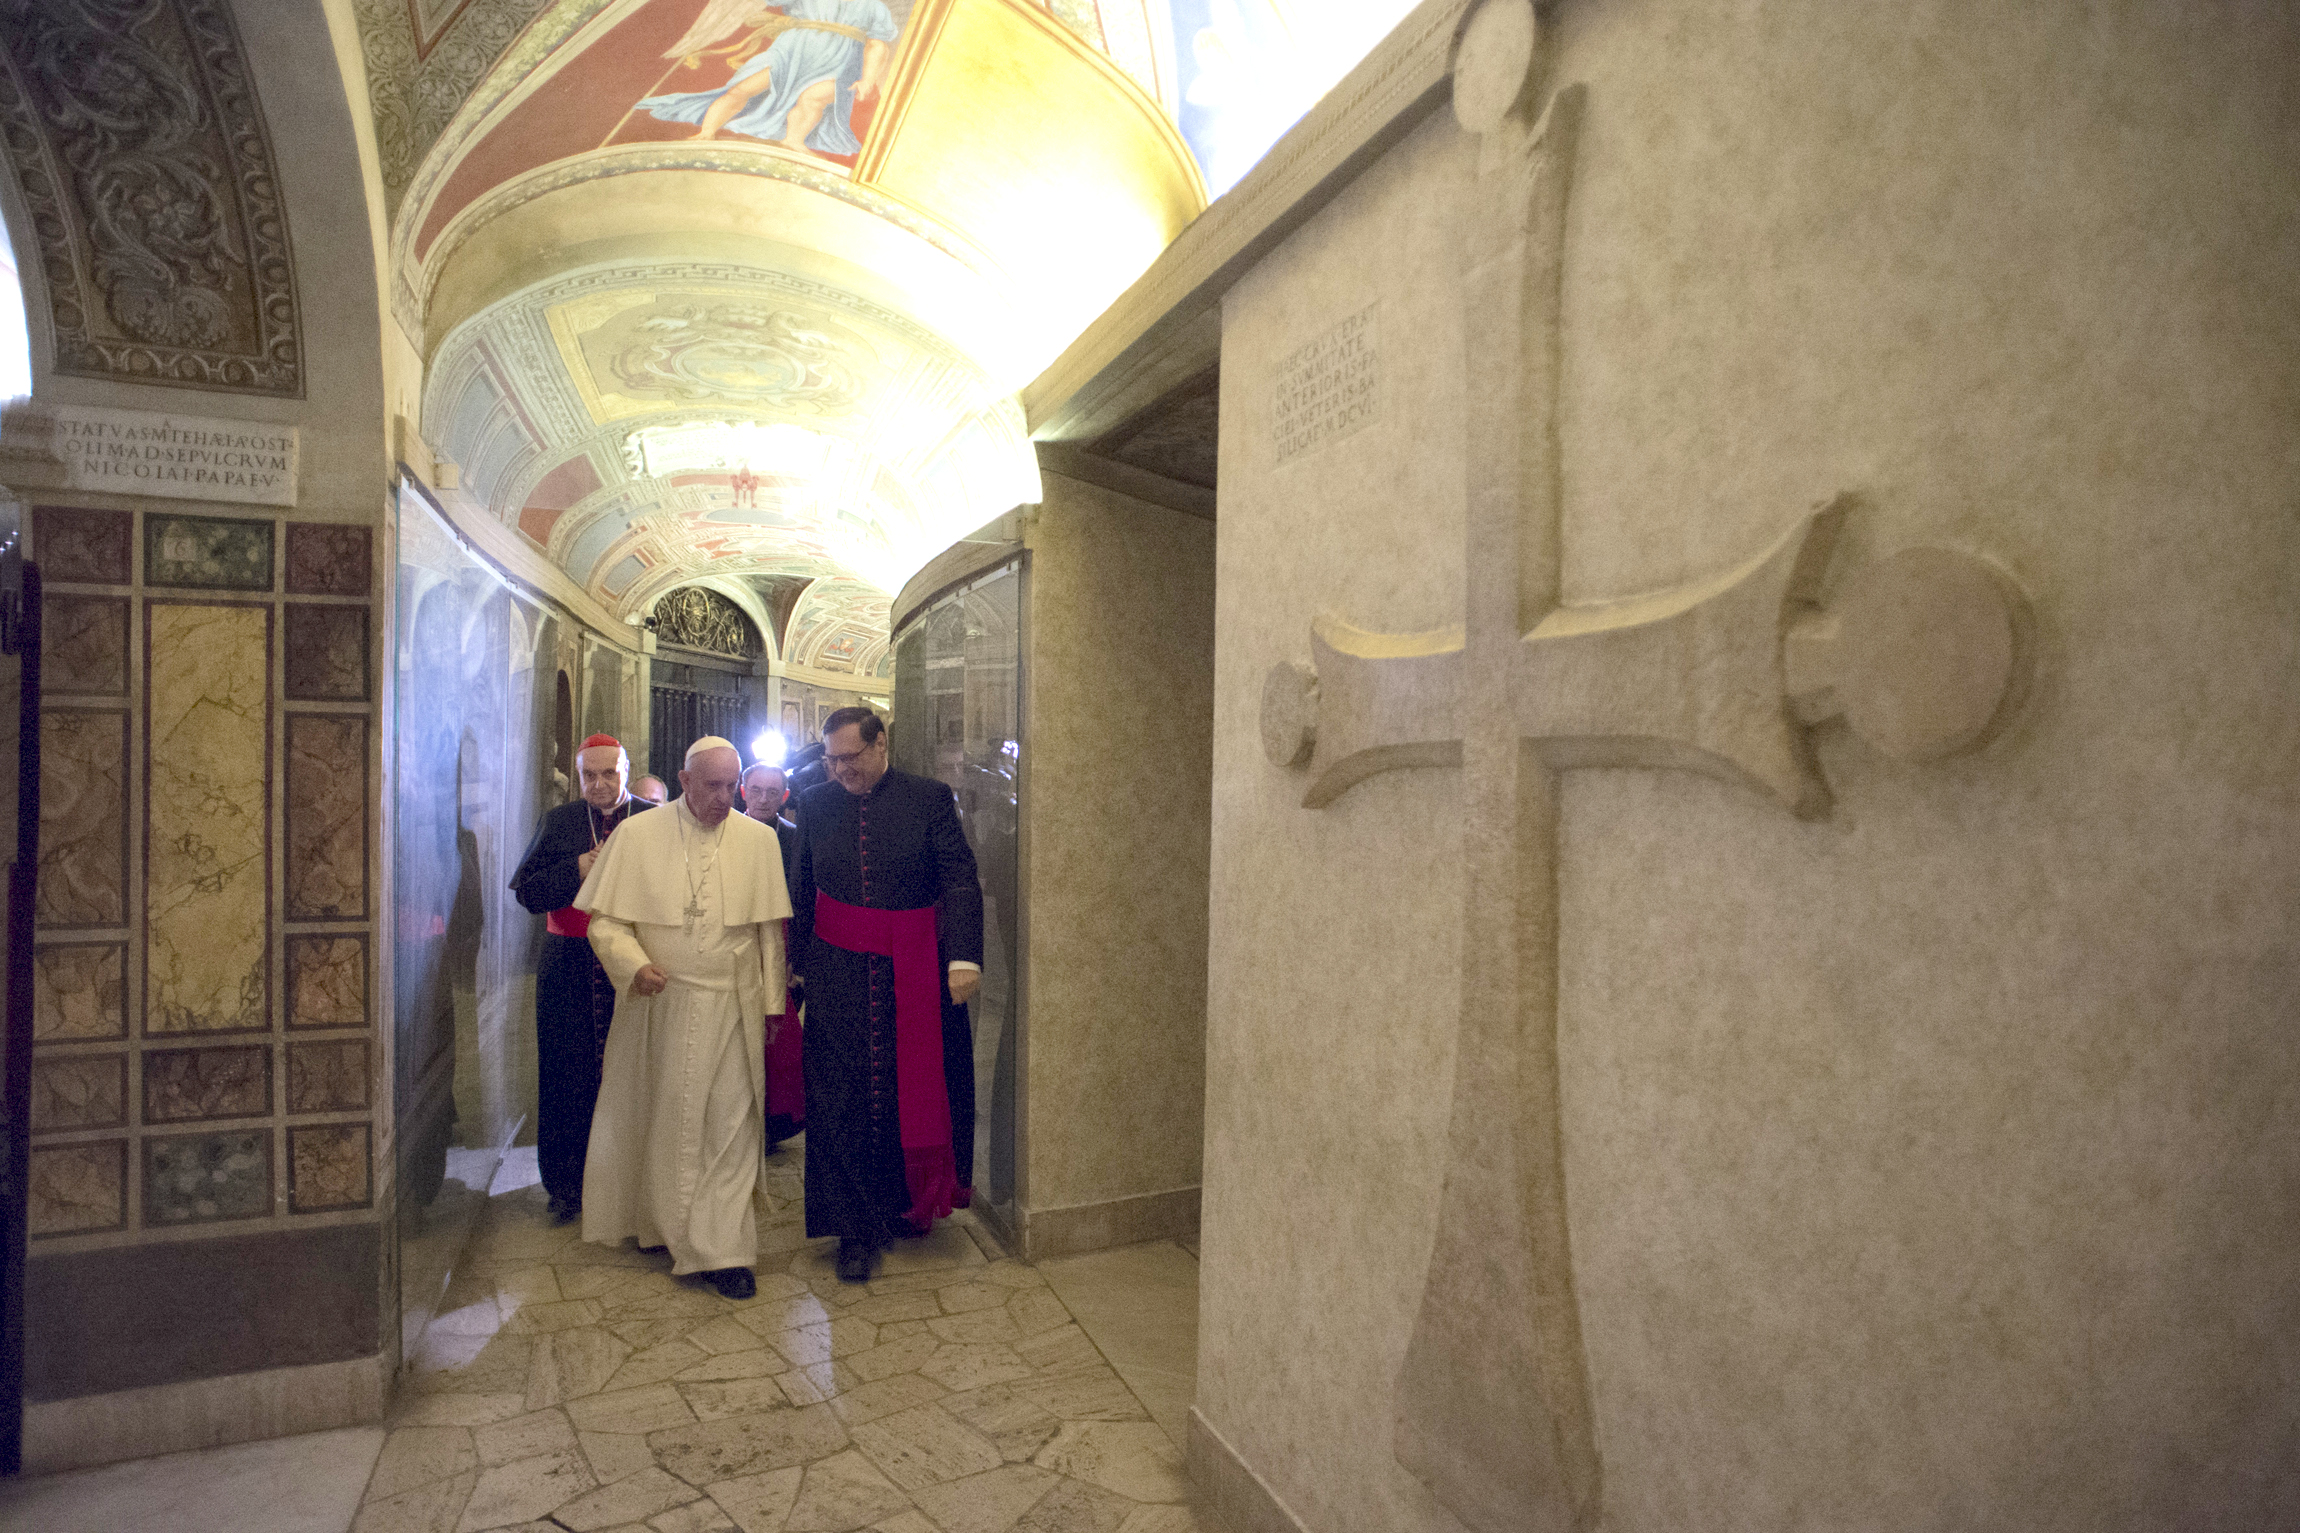 Pope Francis in the Vatican Grottoes  - 2 November 2015